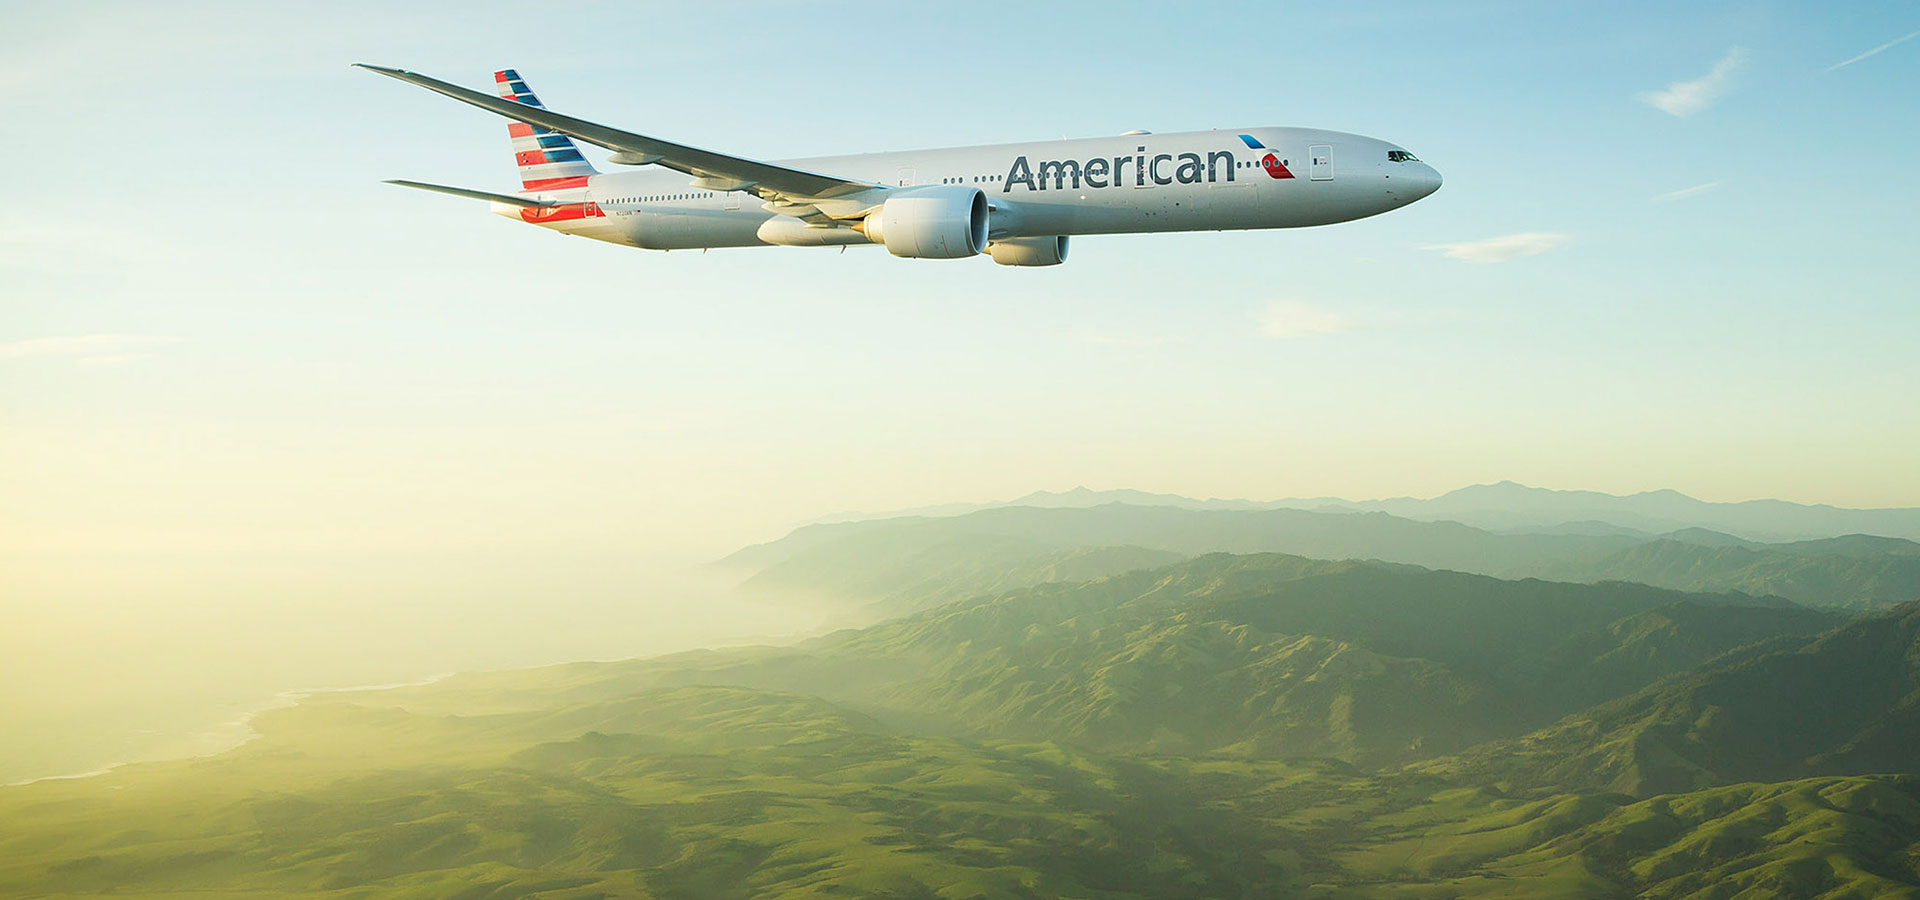 AMERICAN AIRLINES - An American aviation icon just got better. A new brand identity, planes & more destinations than ever before. The New American has arrived.